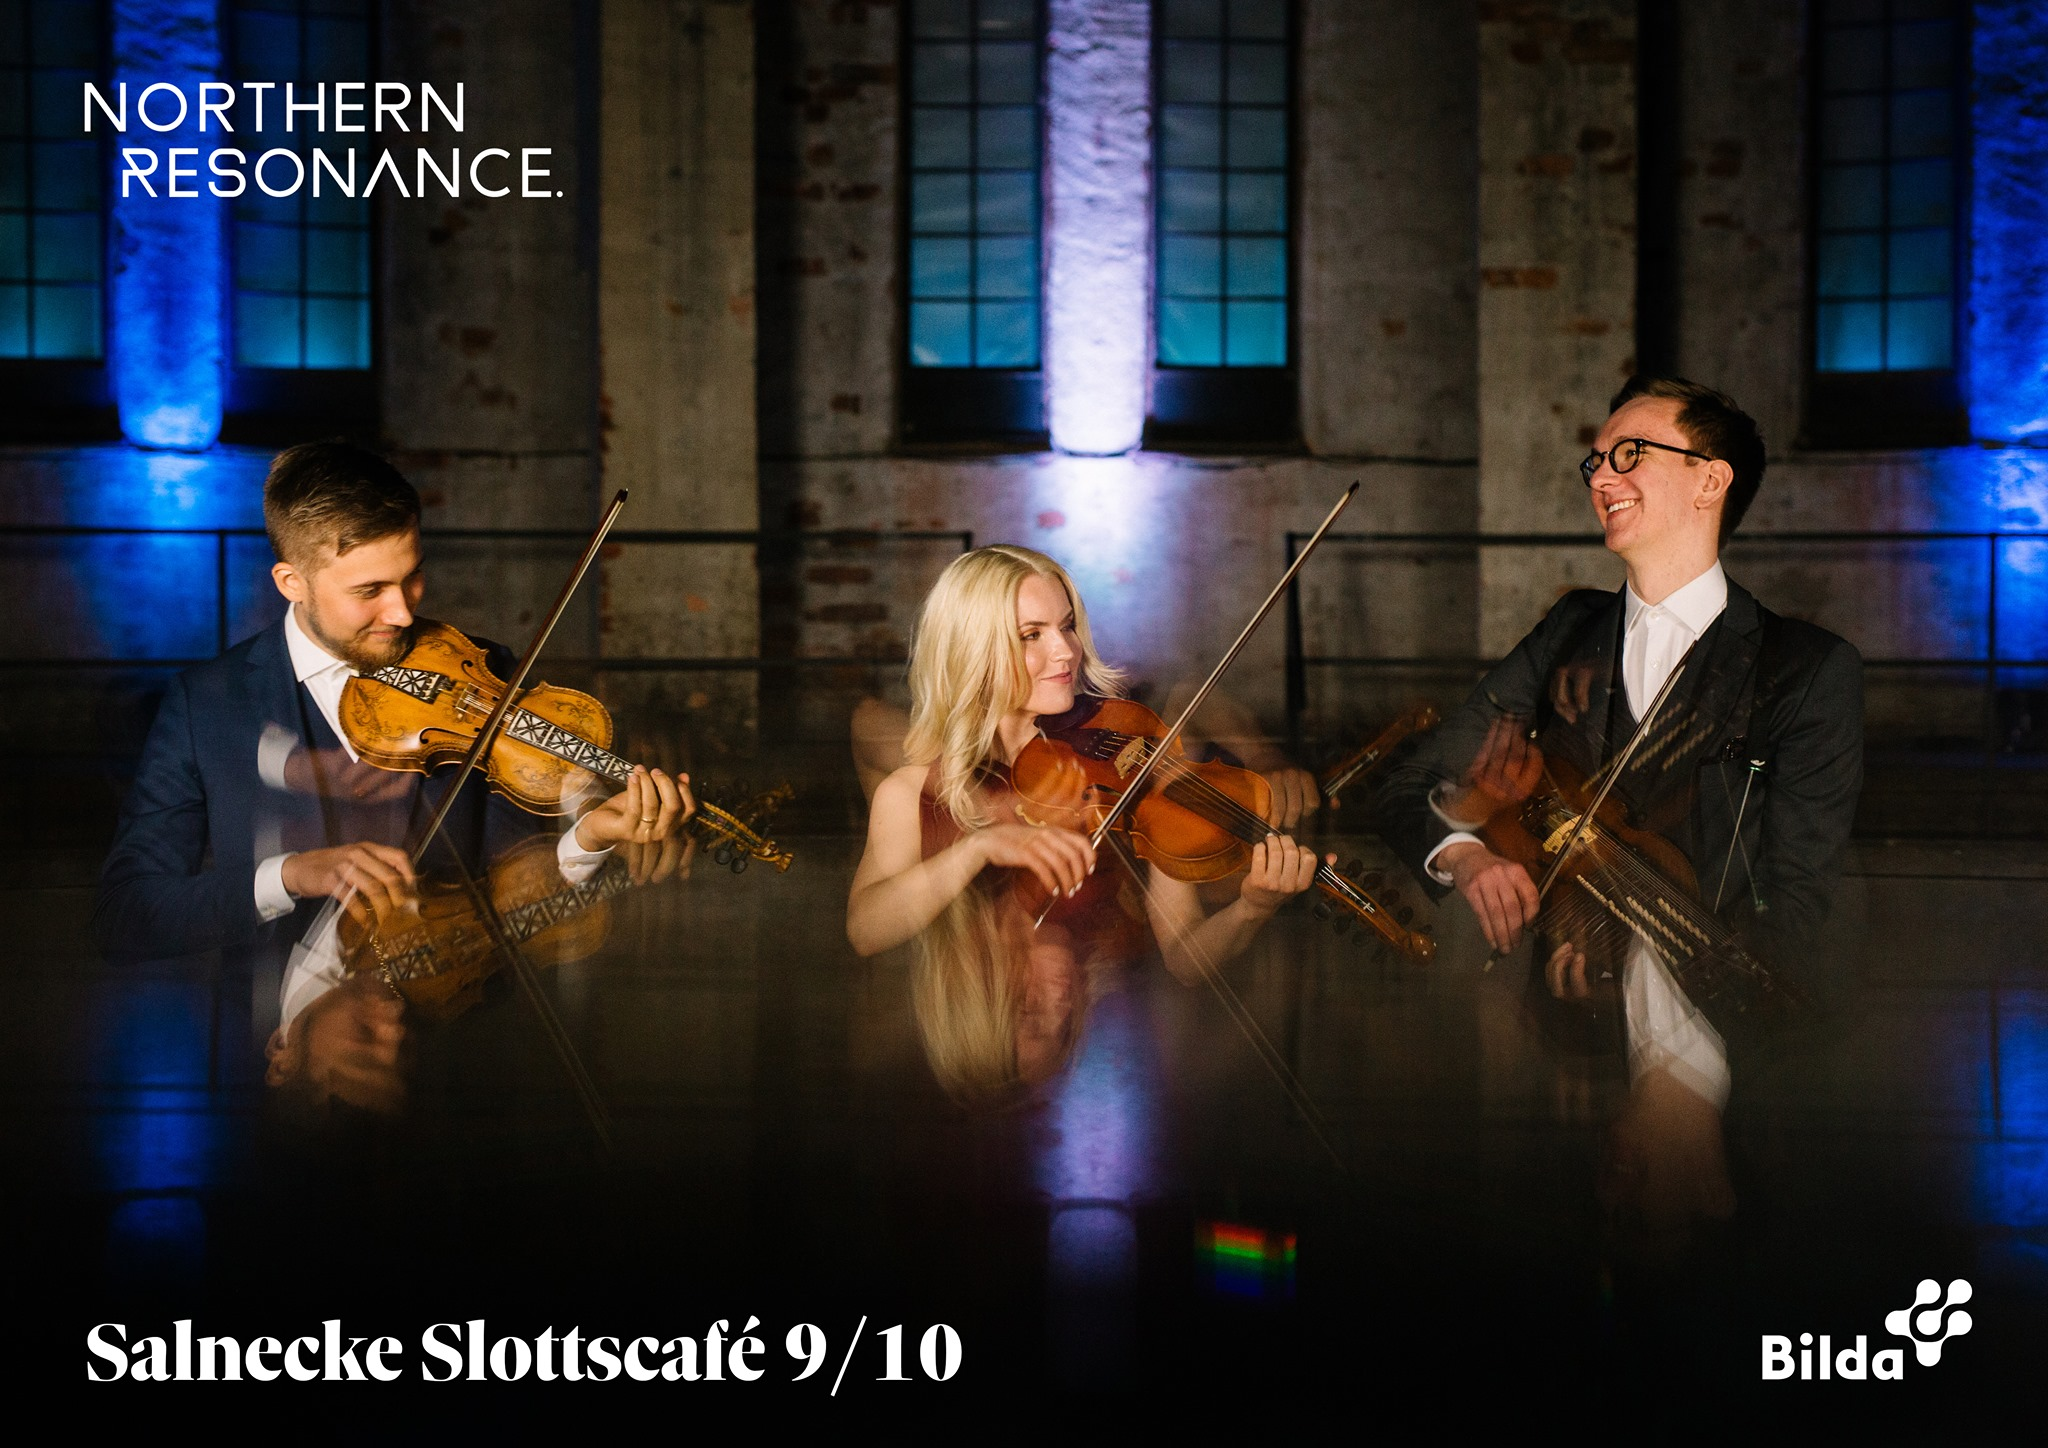 Northern Resonance på Salnecke Slottscafé, 9 oktober 2020 kl 19.00